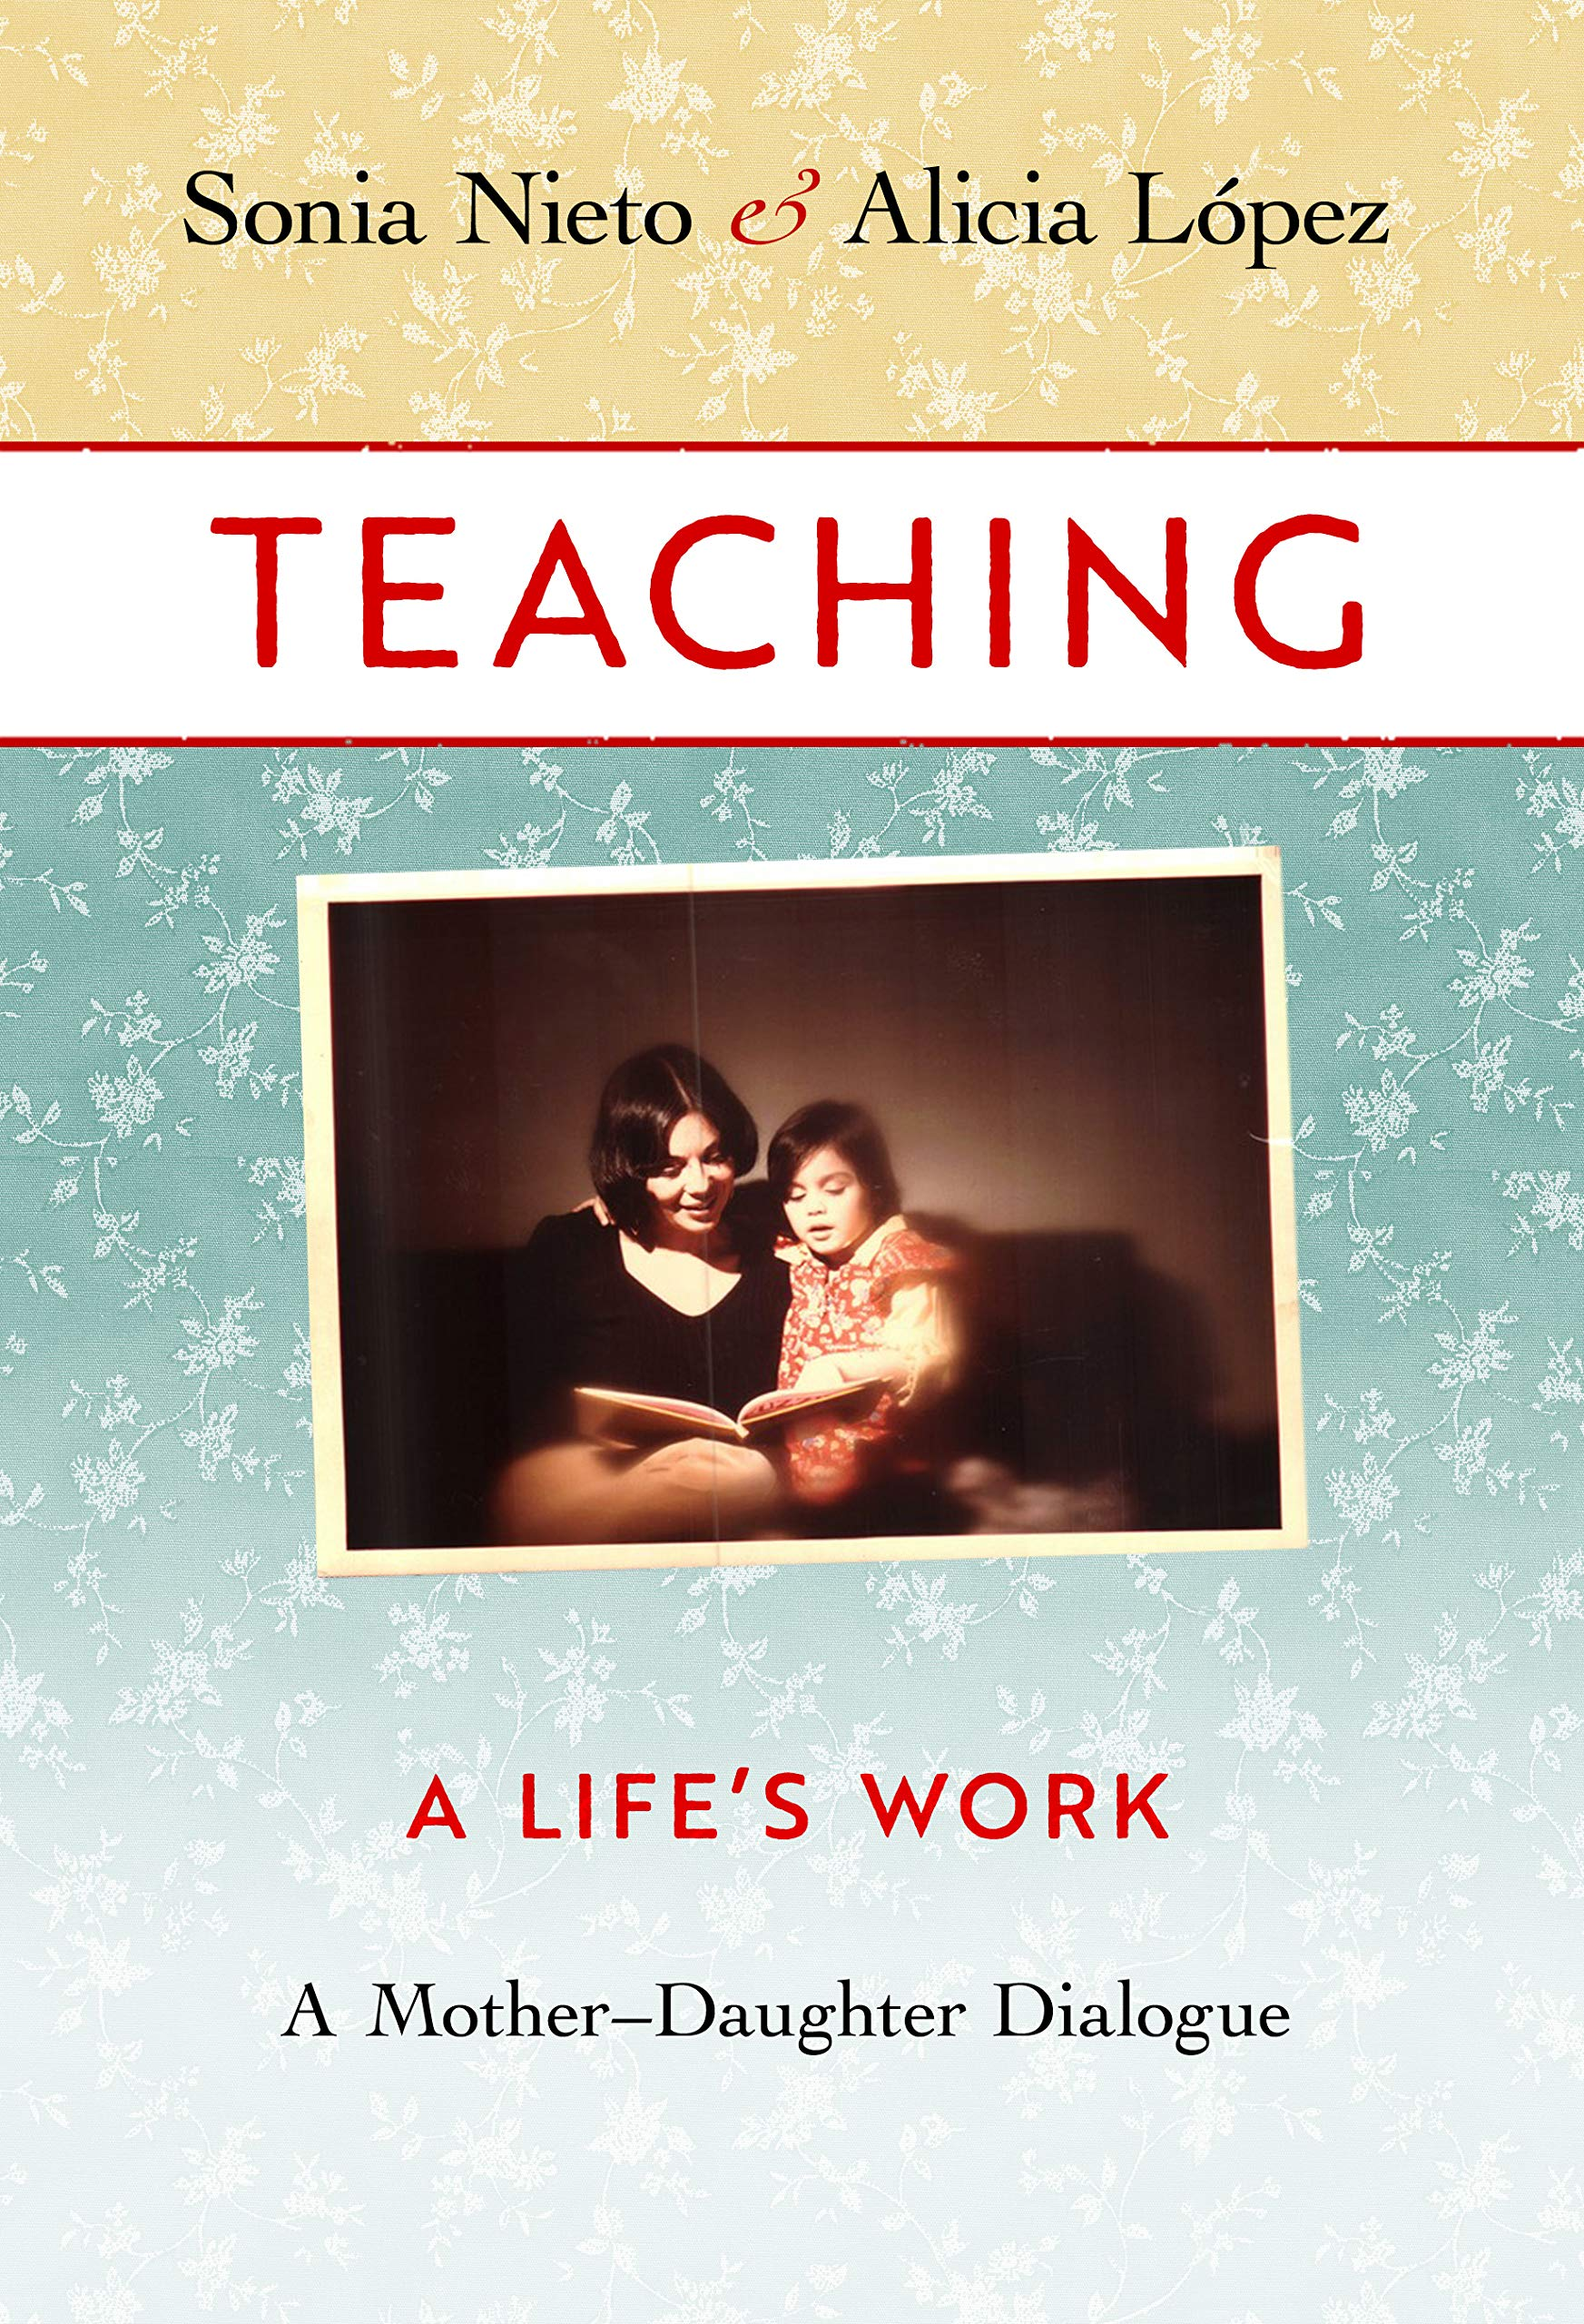 Teaching, A Life's Work: A Mother-Daughter Dialogue: Sonia Nieto